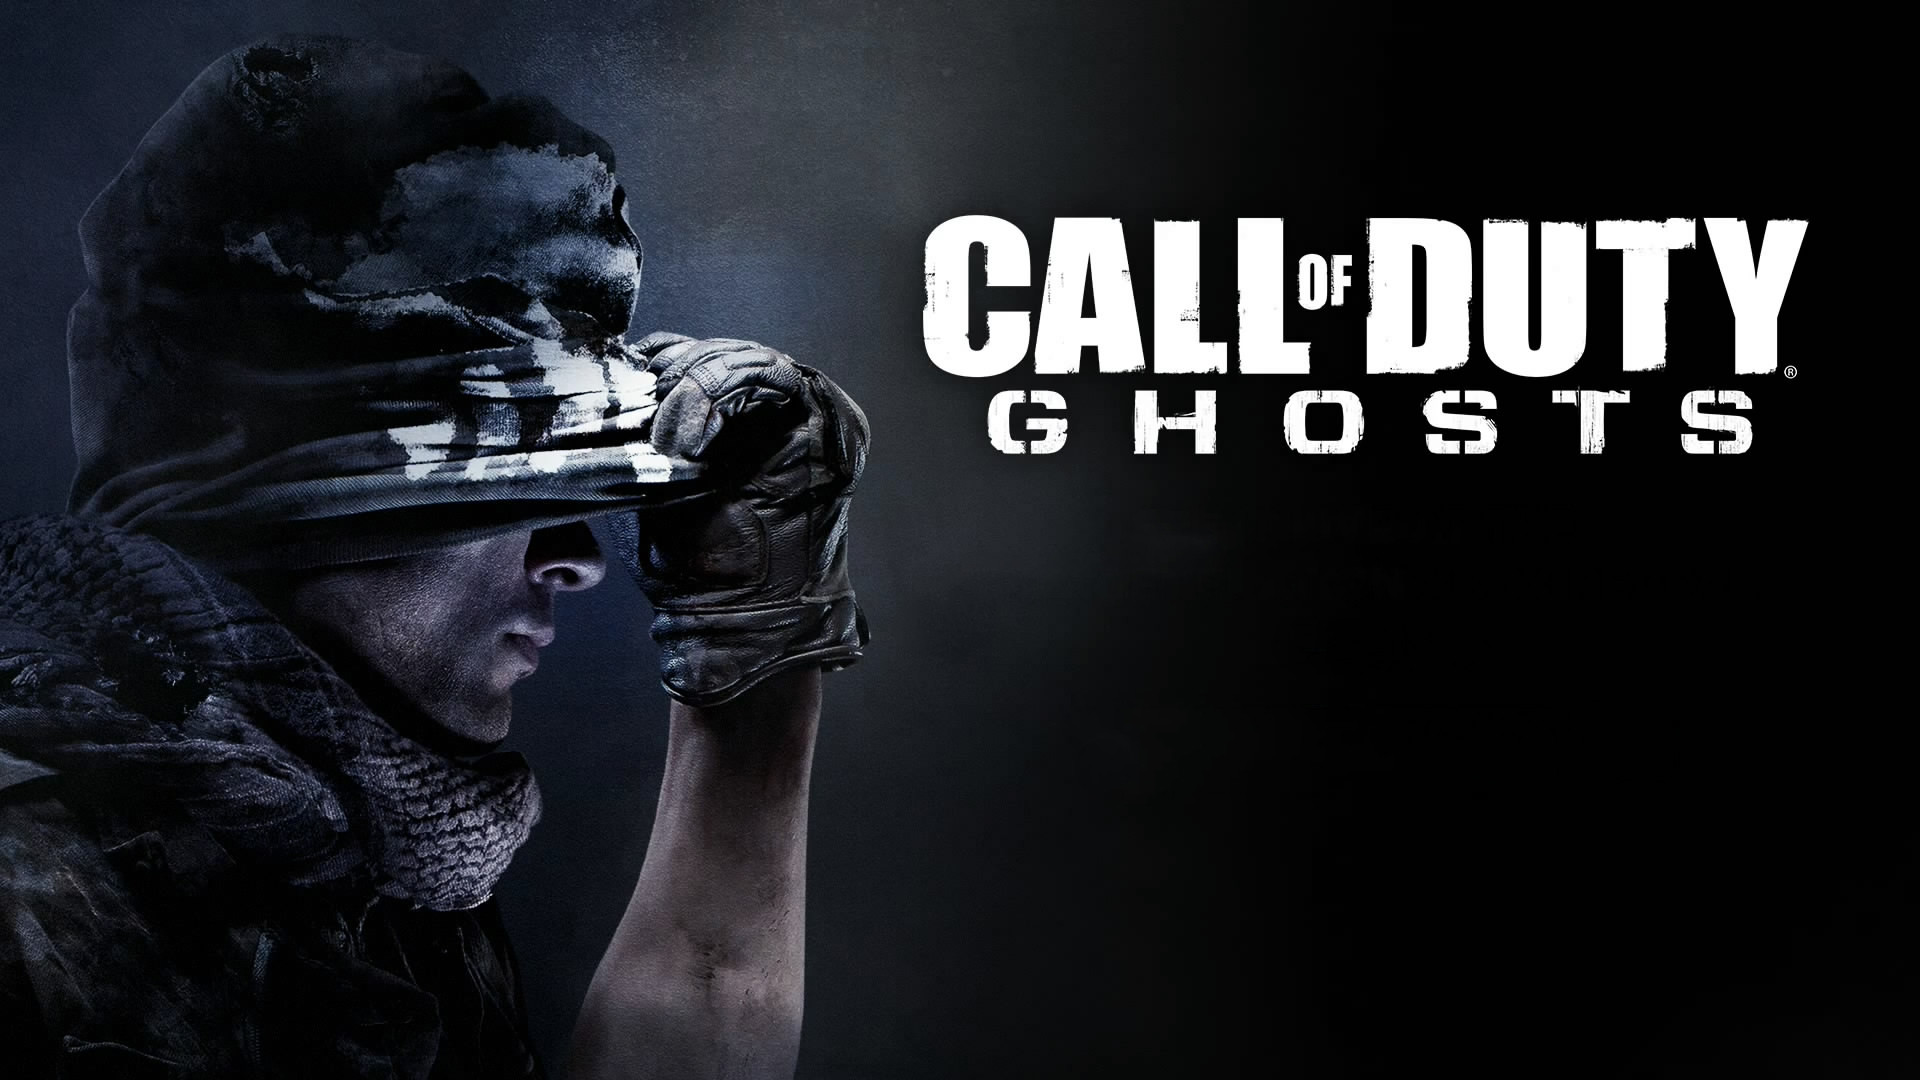 Latest Call of Duty: Ghosts Invasion DLC Pack Coming to PS4 and PC on 3rd July